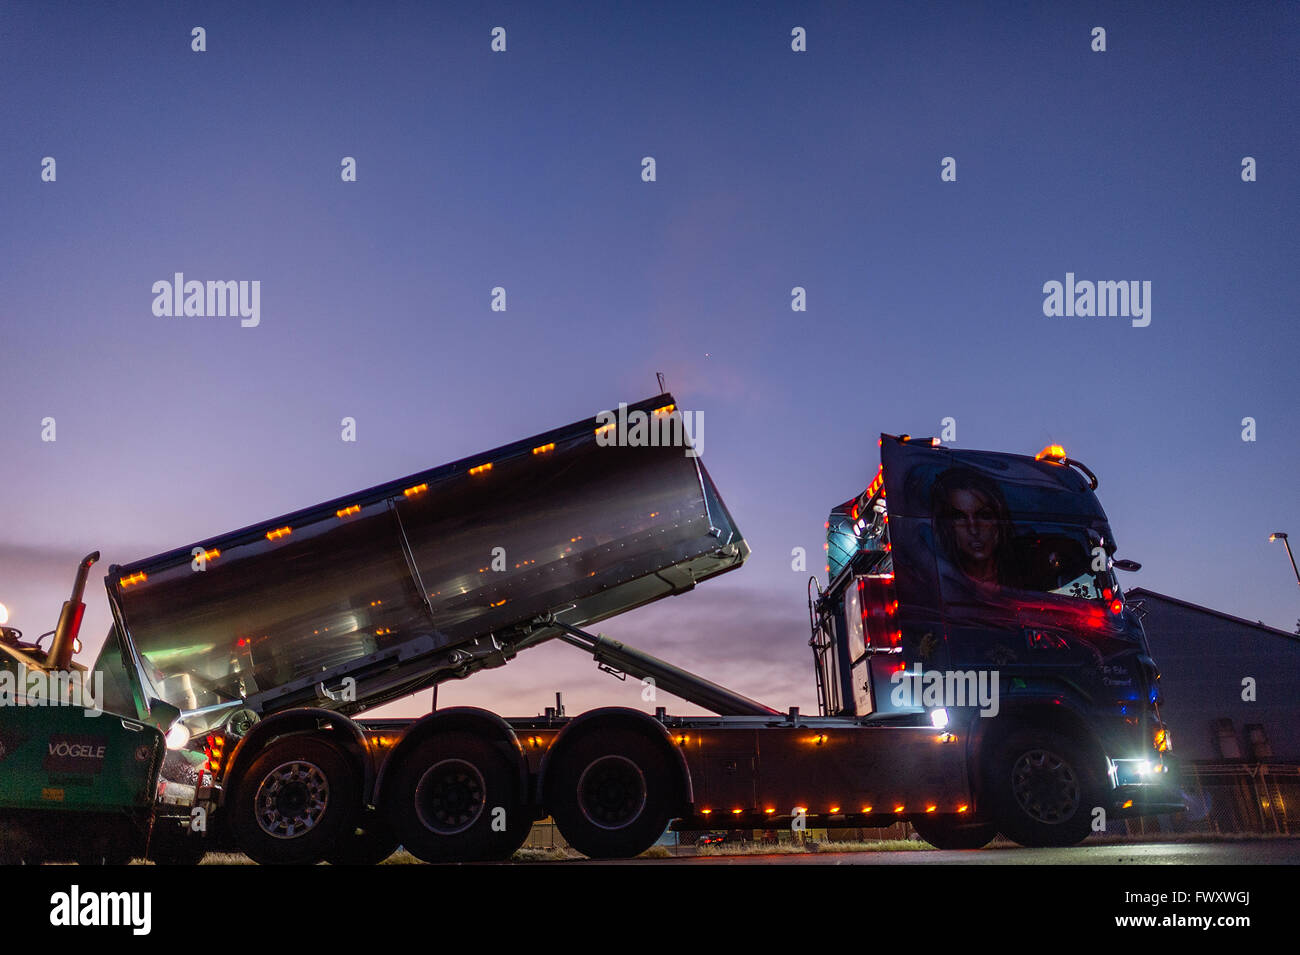 Sweden, Narke, Semi truck on road at night - Stock Image